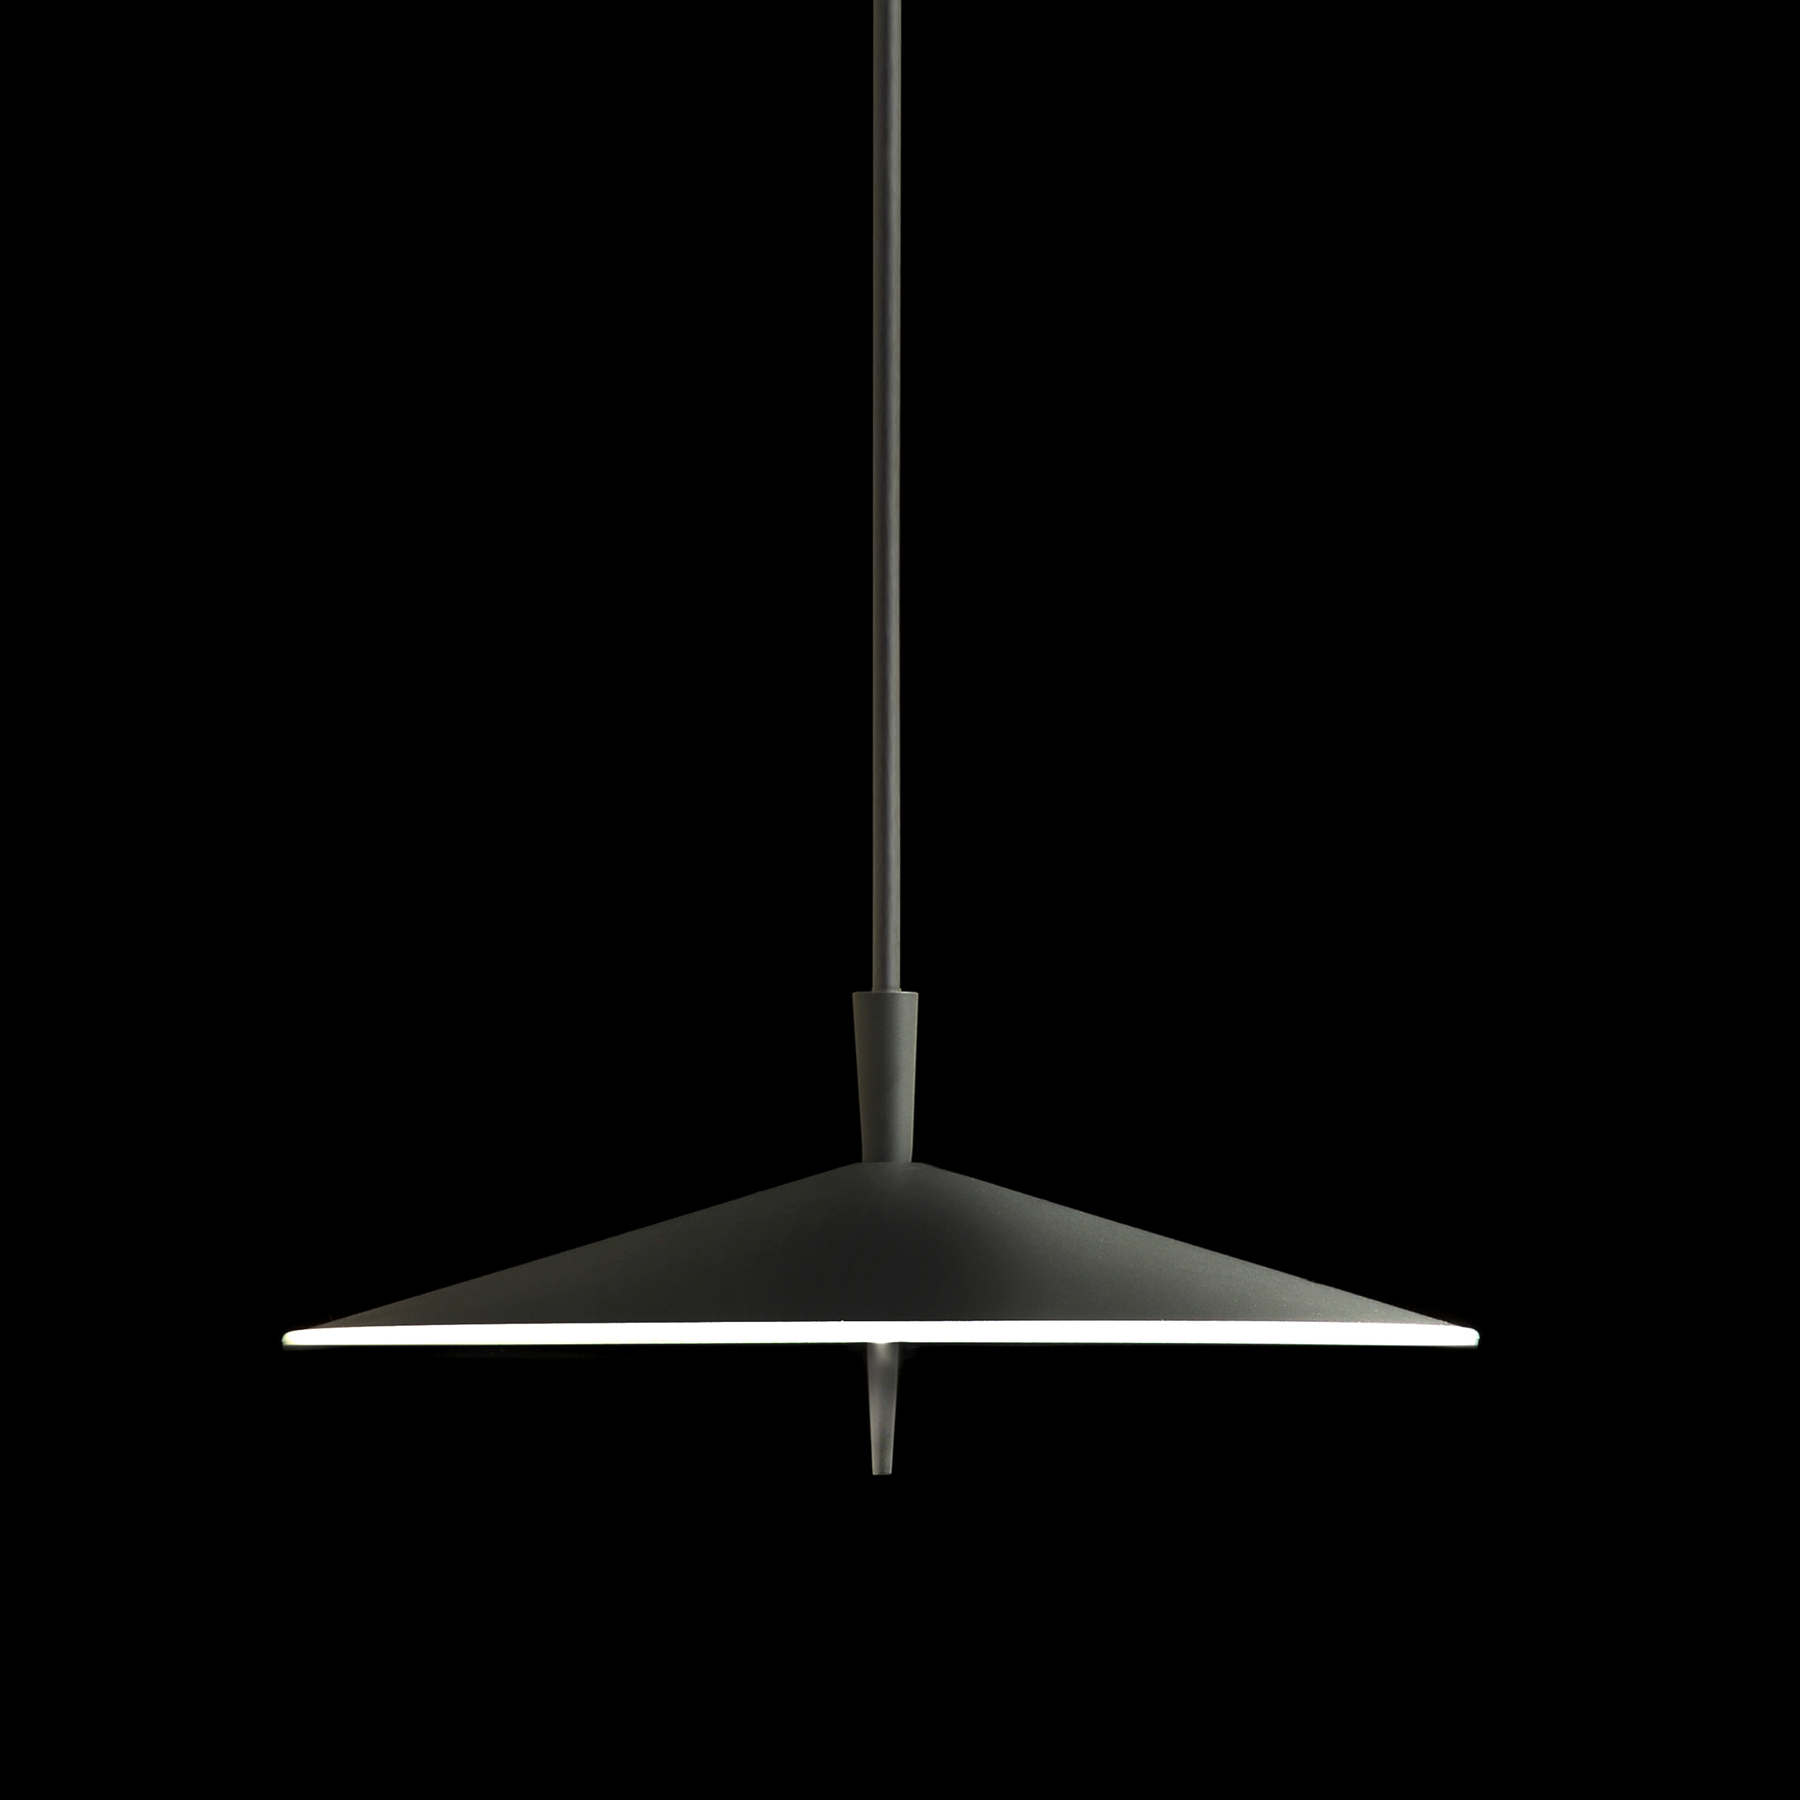 Pla by Milan - LED suspension fixture with five step touch dimming features - 2700K